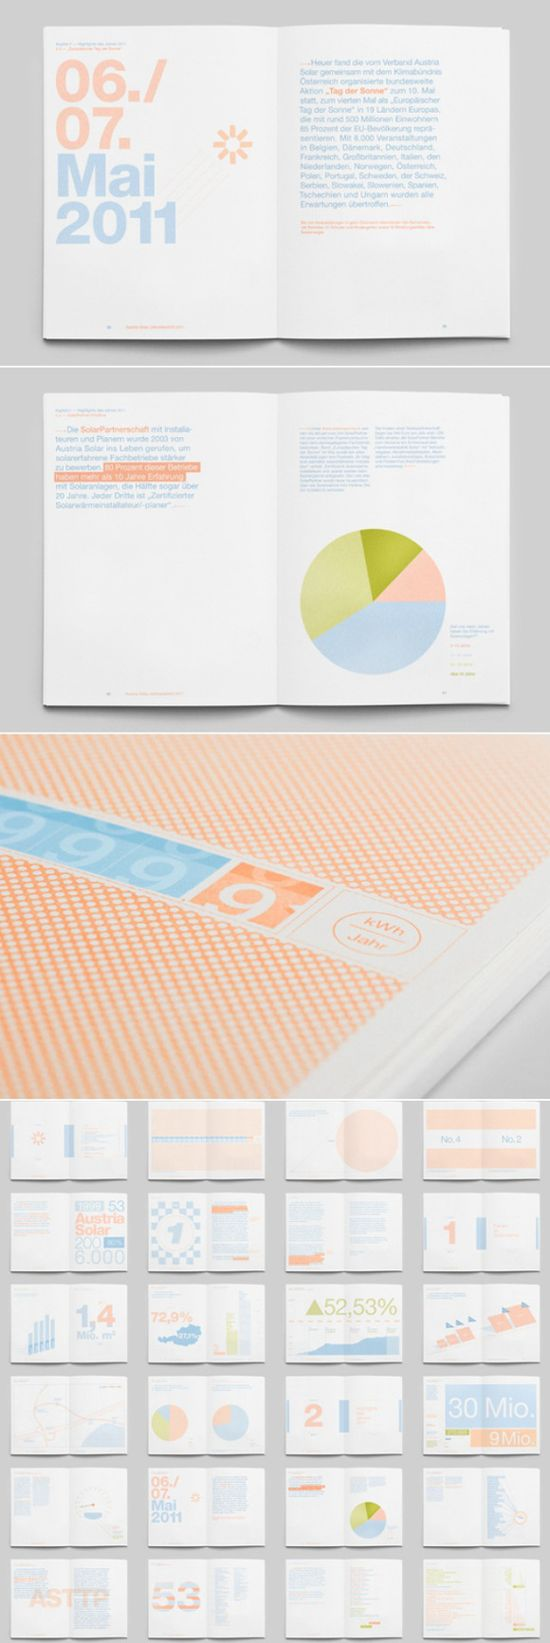 solar powered annual report.